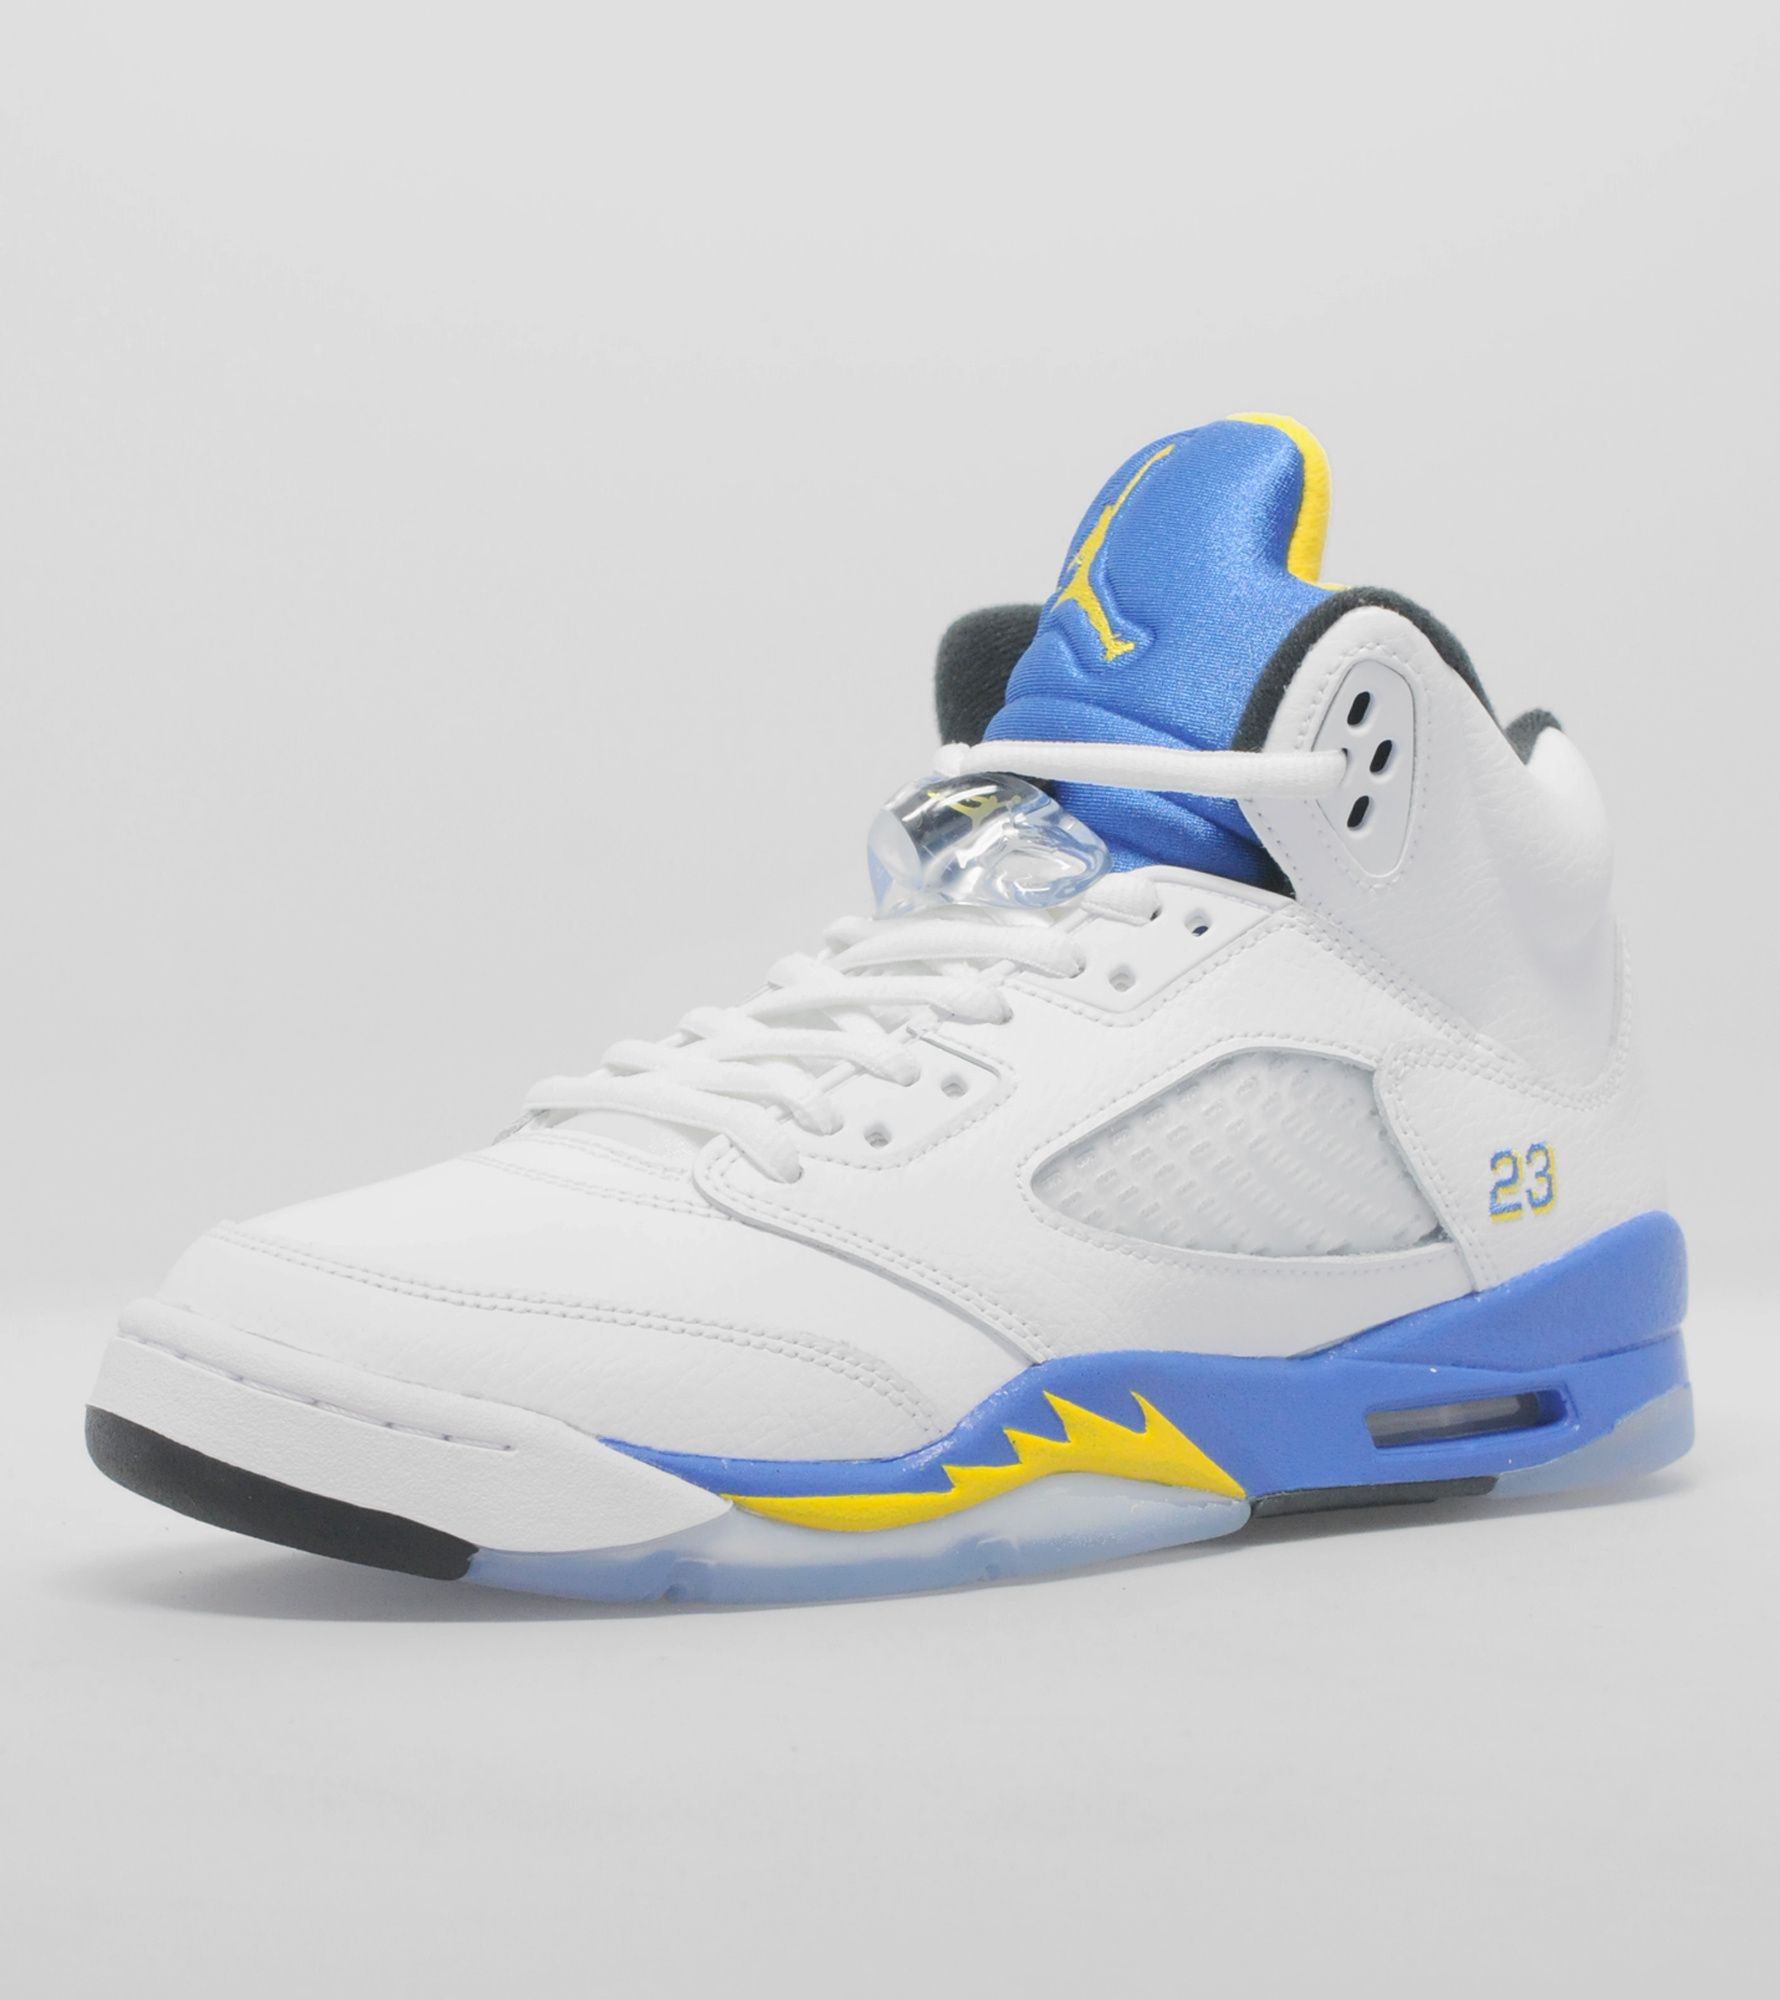 Jordan V 'Laney' Junior